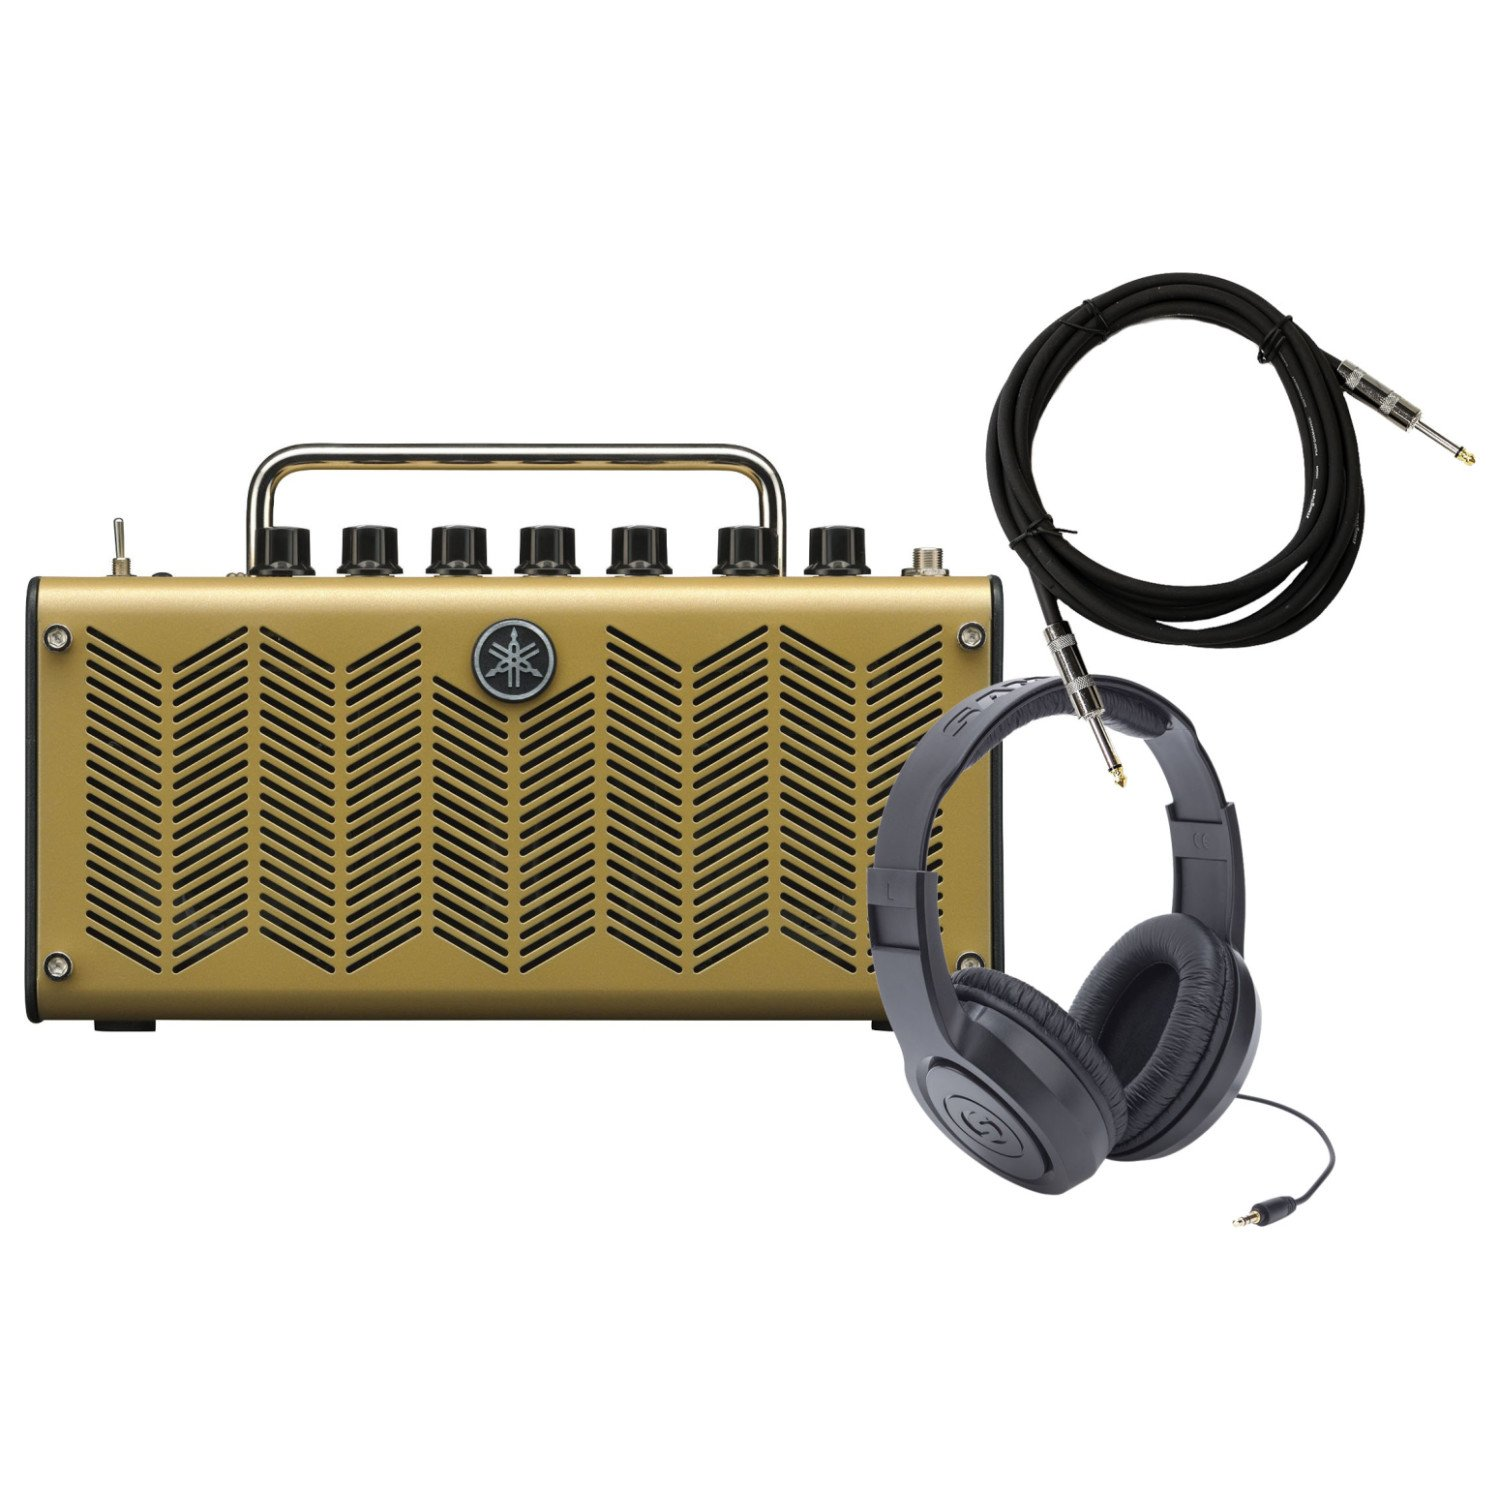 Yamaha THR5A ACOUSTIC 10-watt (5W+5W) Stereo Amplifier w/ Cubase AI6, Headphones, and Cable